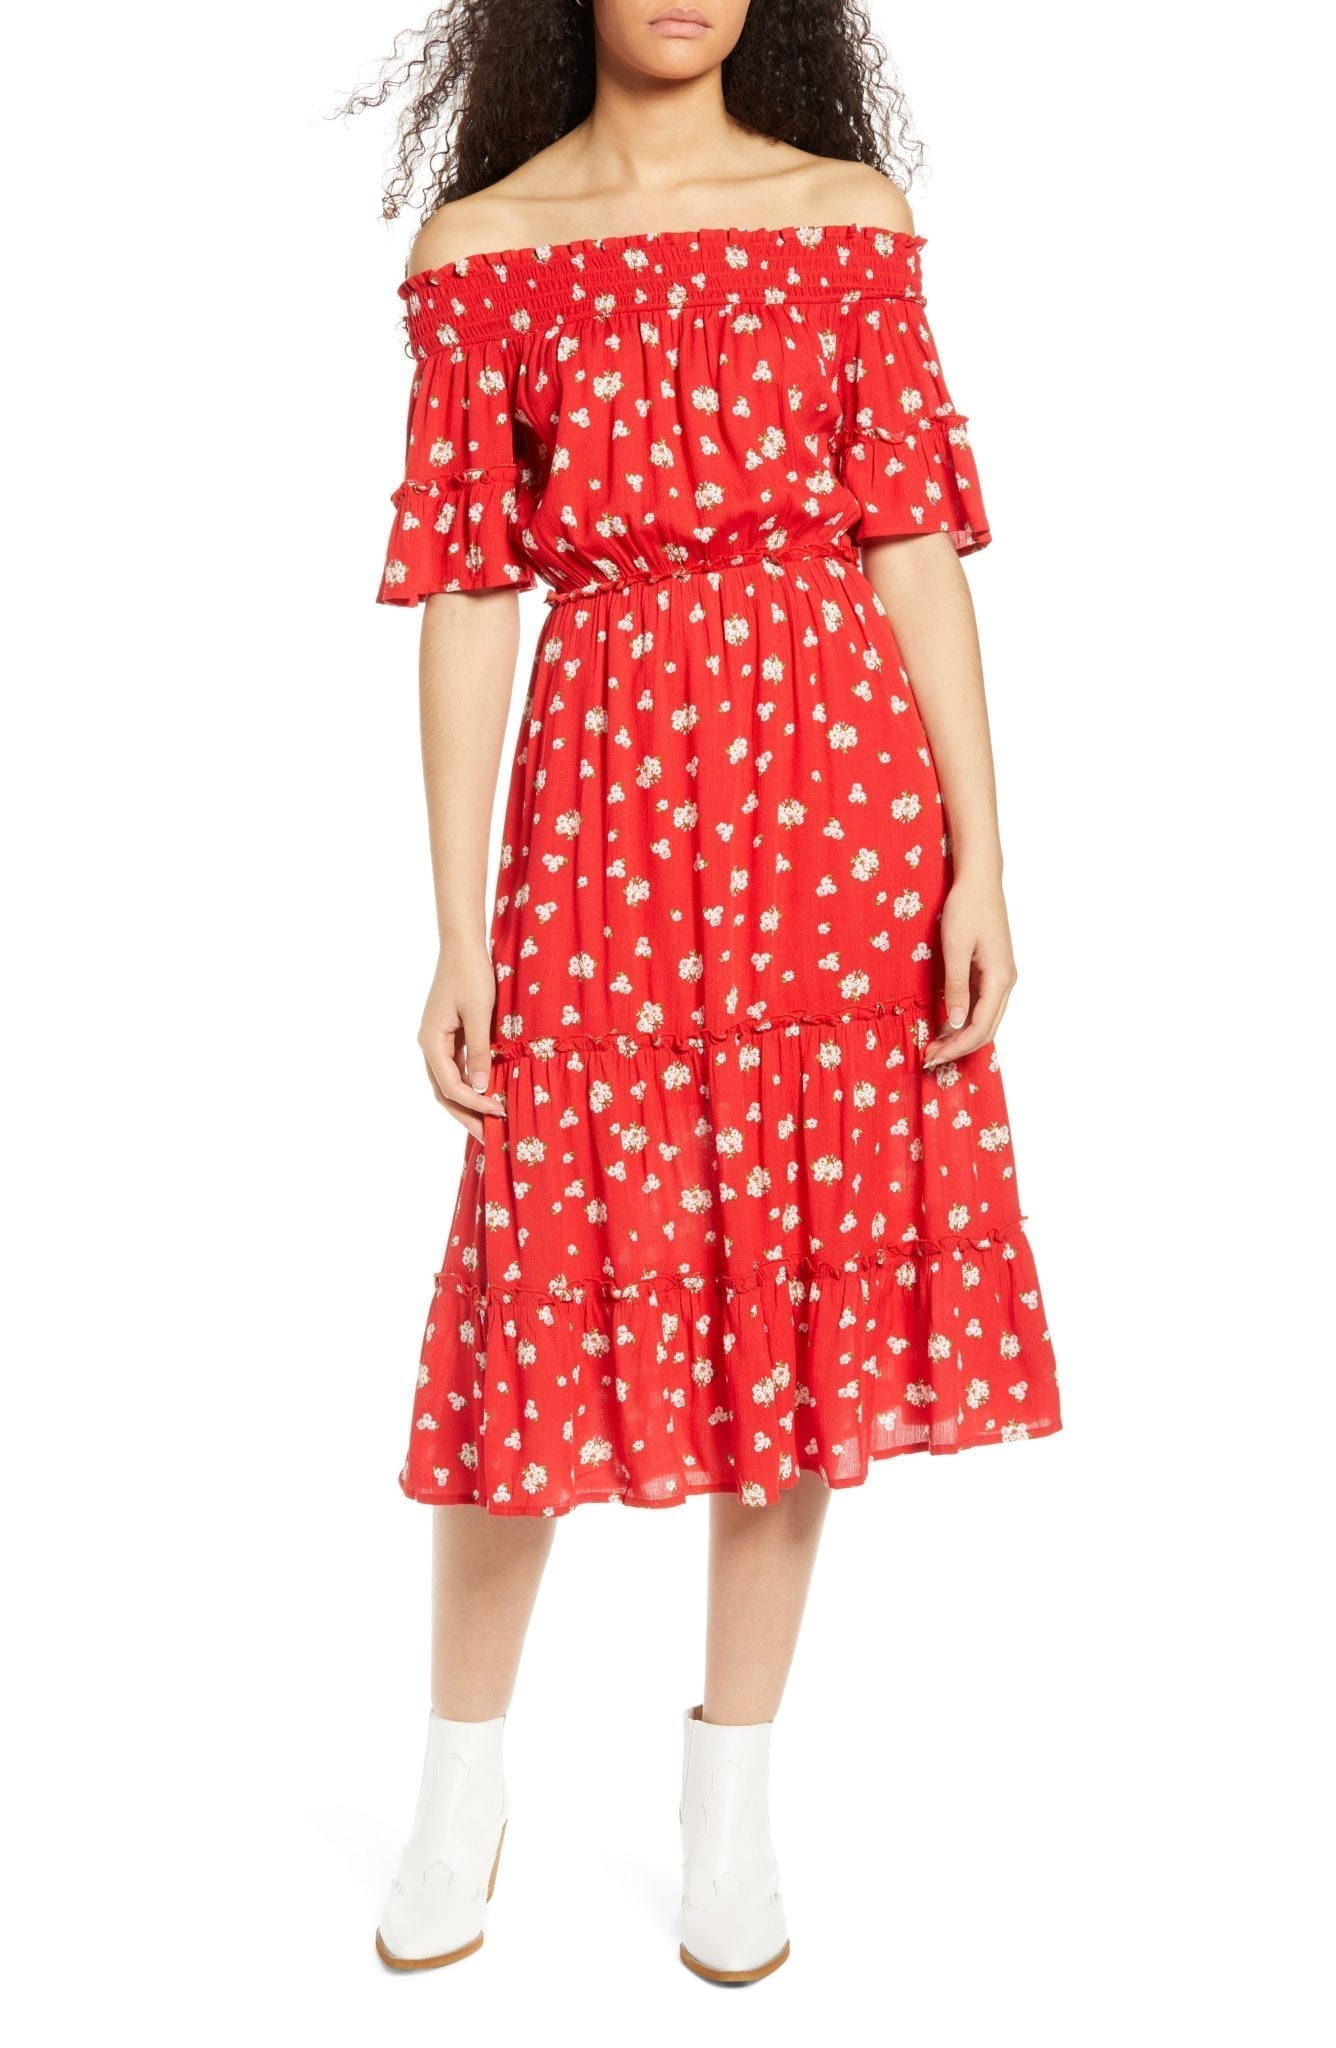 ONE CLOTHING Floral Off the Shoulder Midi Dress